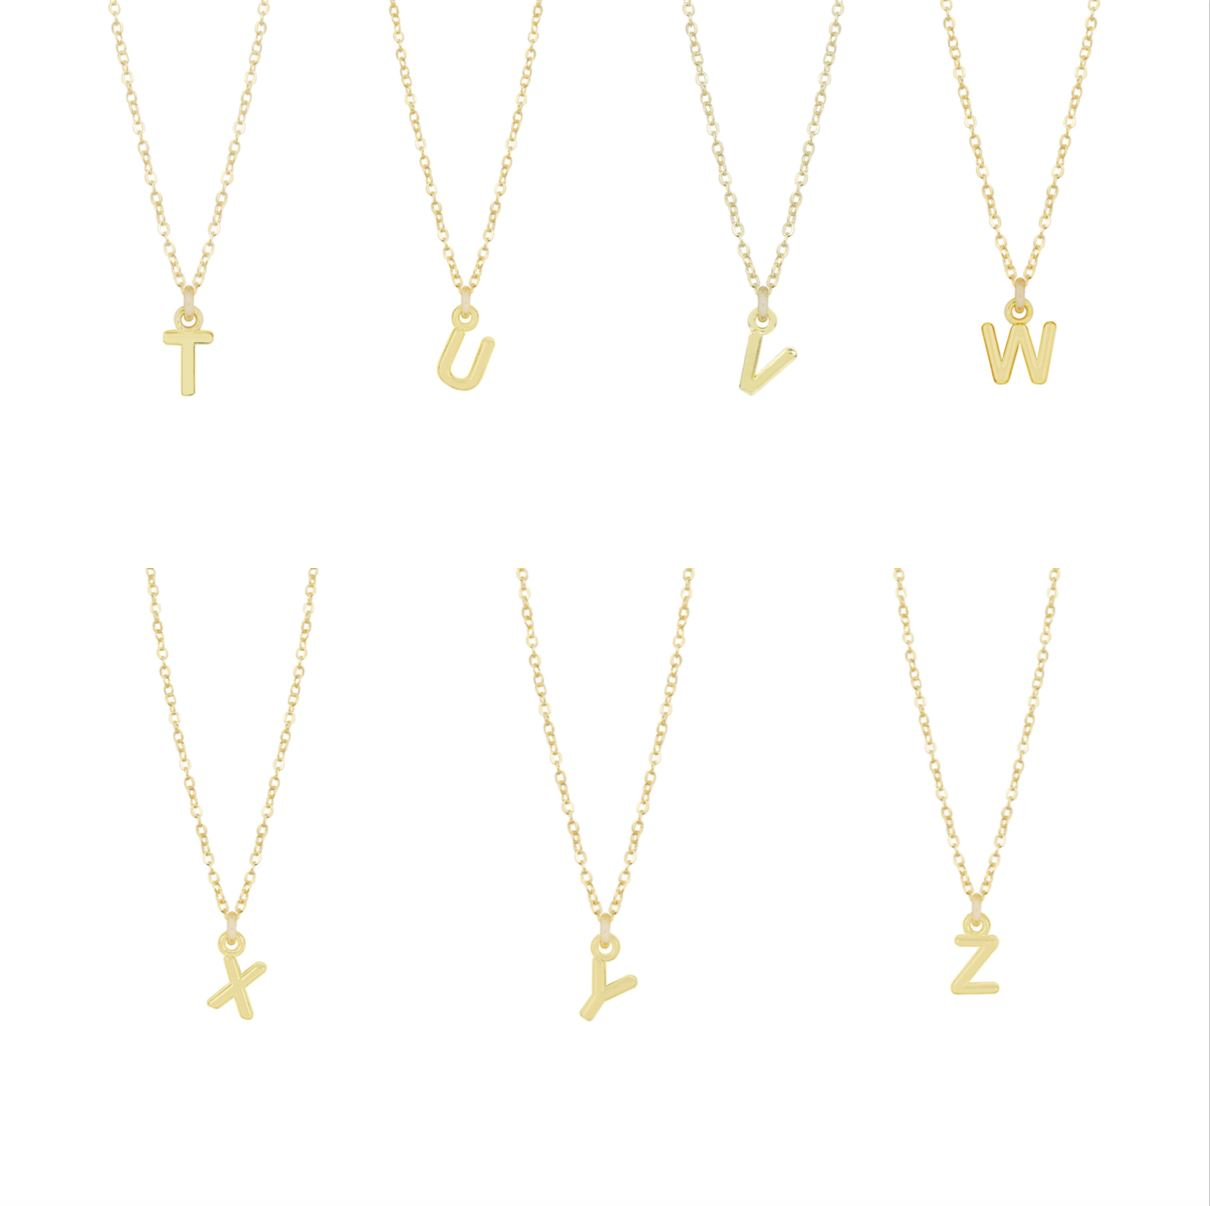 Dainty gold Initial Necklaces as shown on a white background, initials T U V W X Y Z